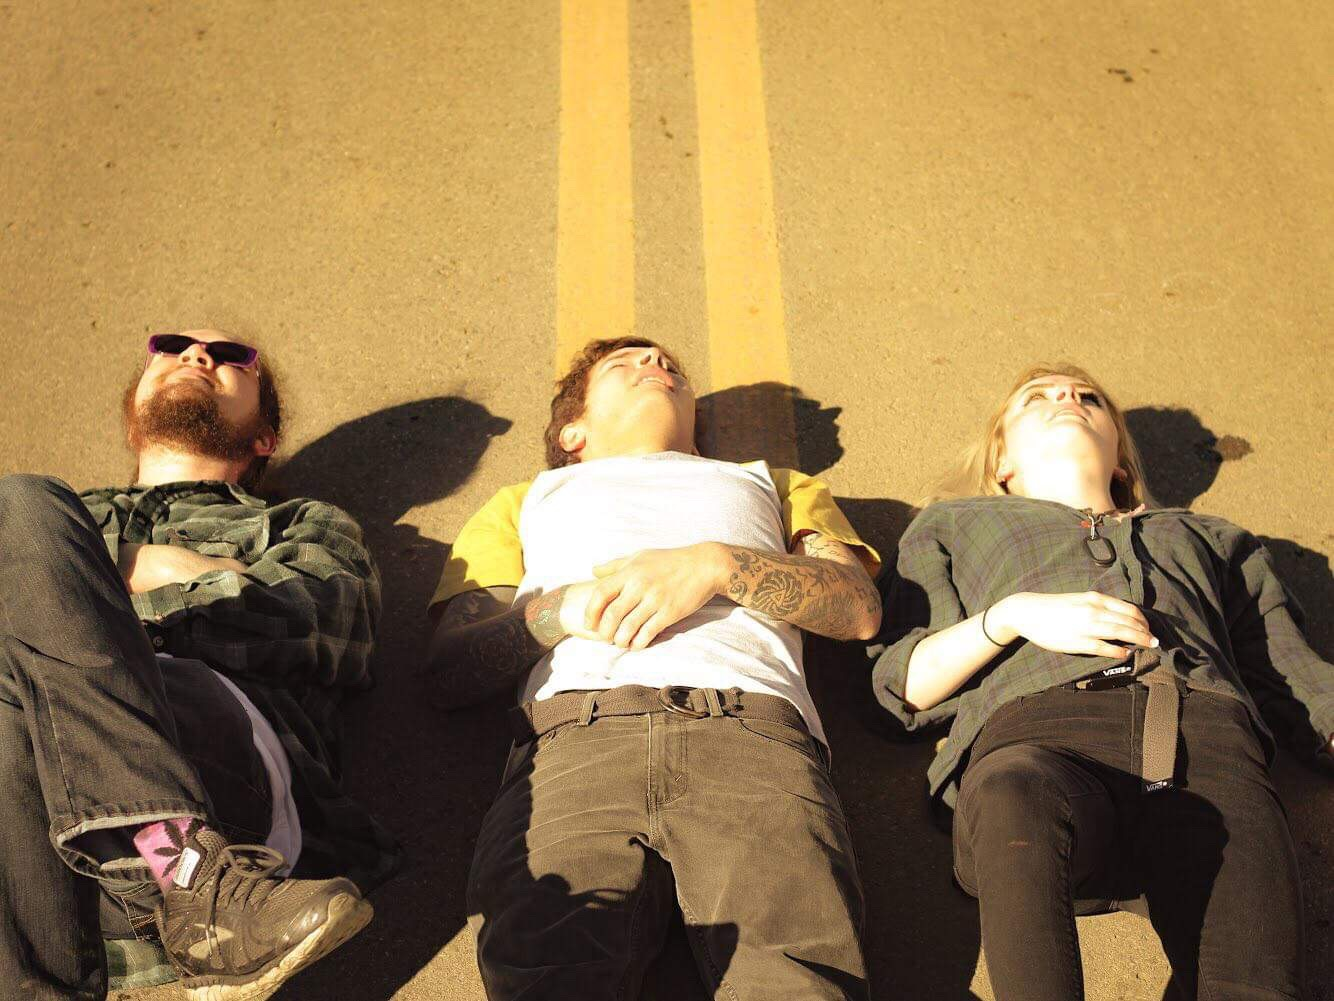 alt=backseat vinyl band laying in street